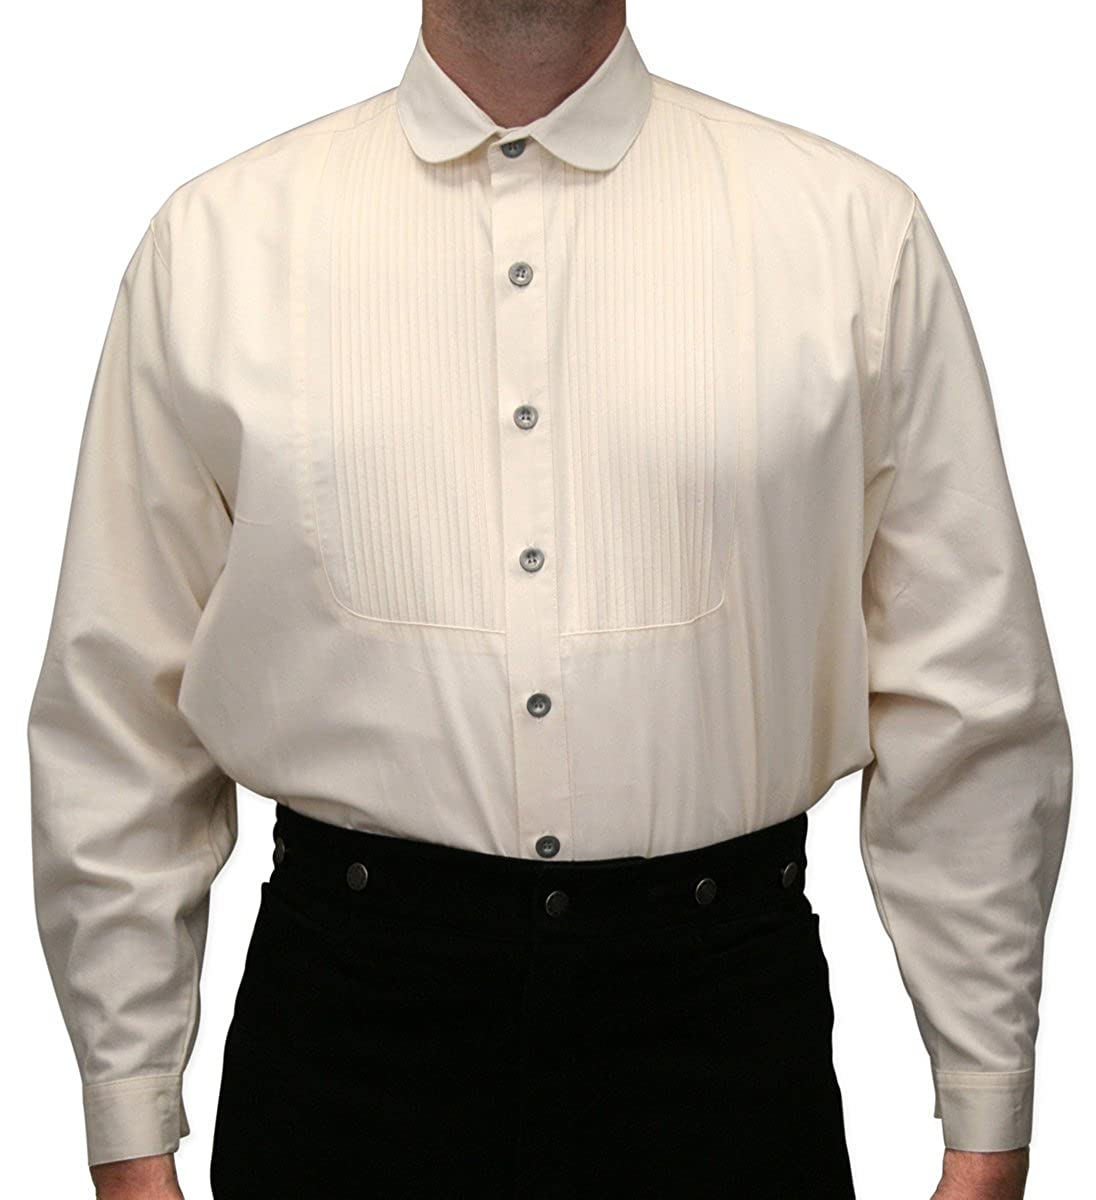 Men's Victorian Costume and Clothing Guide Historical Emporium Mens Pleated Edwardian Round Club Collar Dress Shirt $59.95 AT vintagedancer.com